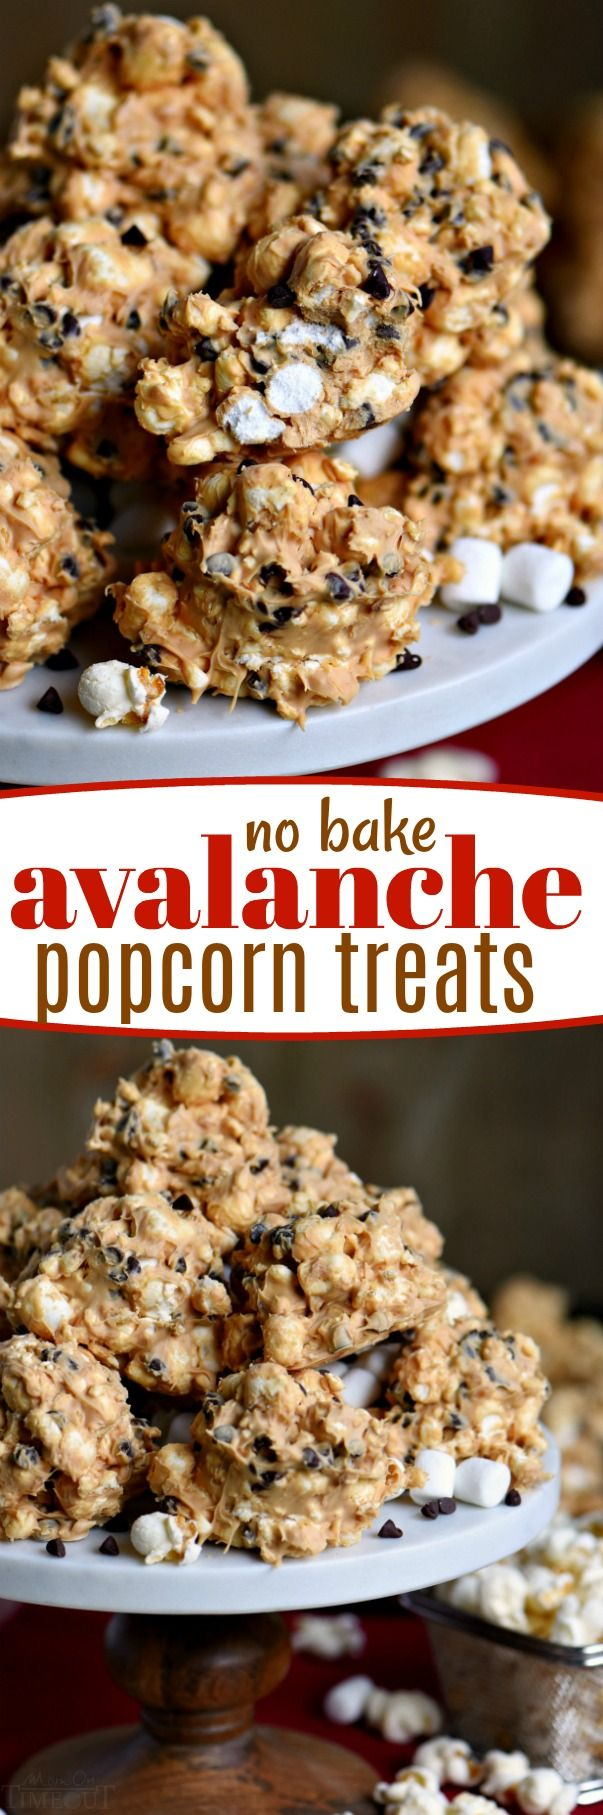 No Bake Avalanche Popcorn Treats are a must-make for the holiday season and the perfect addition to cookie trays! Peanut butter, popcorn, marshmallows and chocolate chips combine for an easy, no bake treat that everyone will love! // Mom On Timeout #ad @FritoLay #mingleinabox #sweepstakes